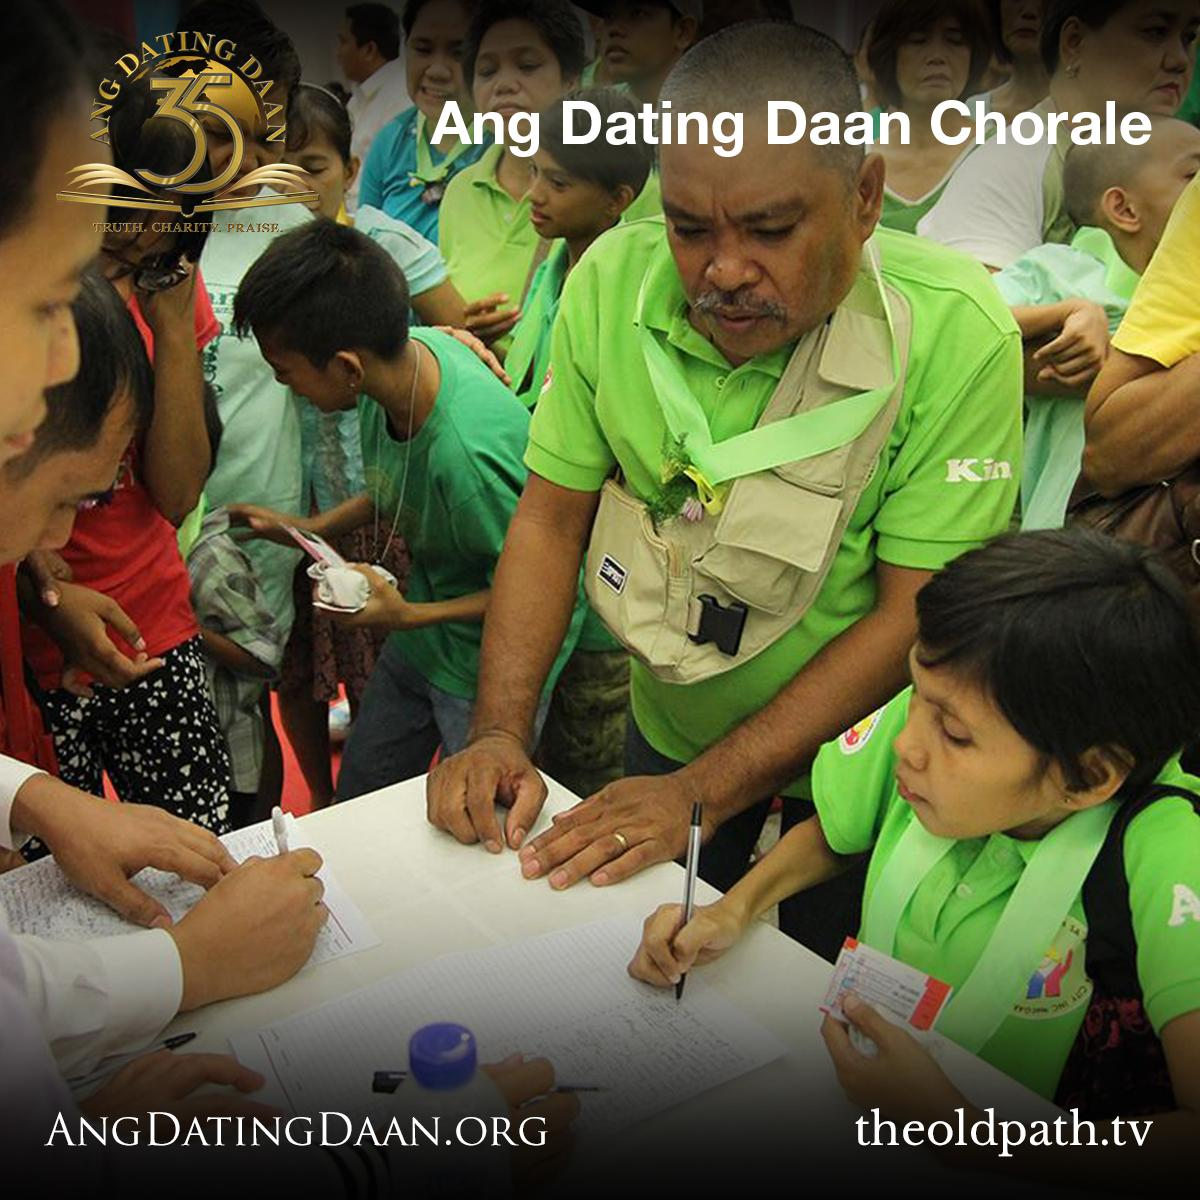 ang dating daan justin tv Ang dating daan live now ang dating daan worldwide bible exposition december 8, 2017 kapatid loading unsubscribe from kapatid.